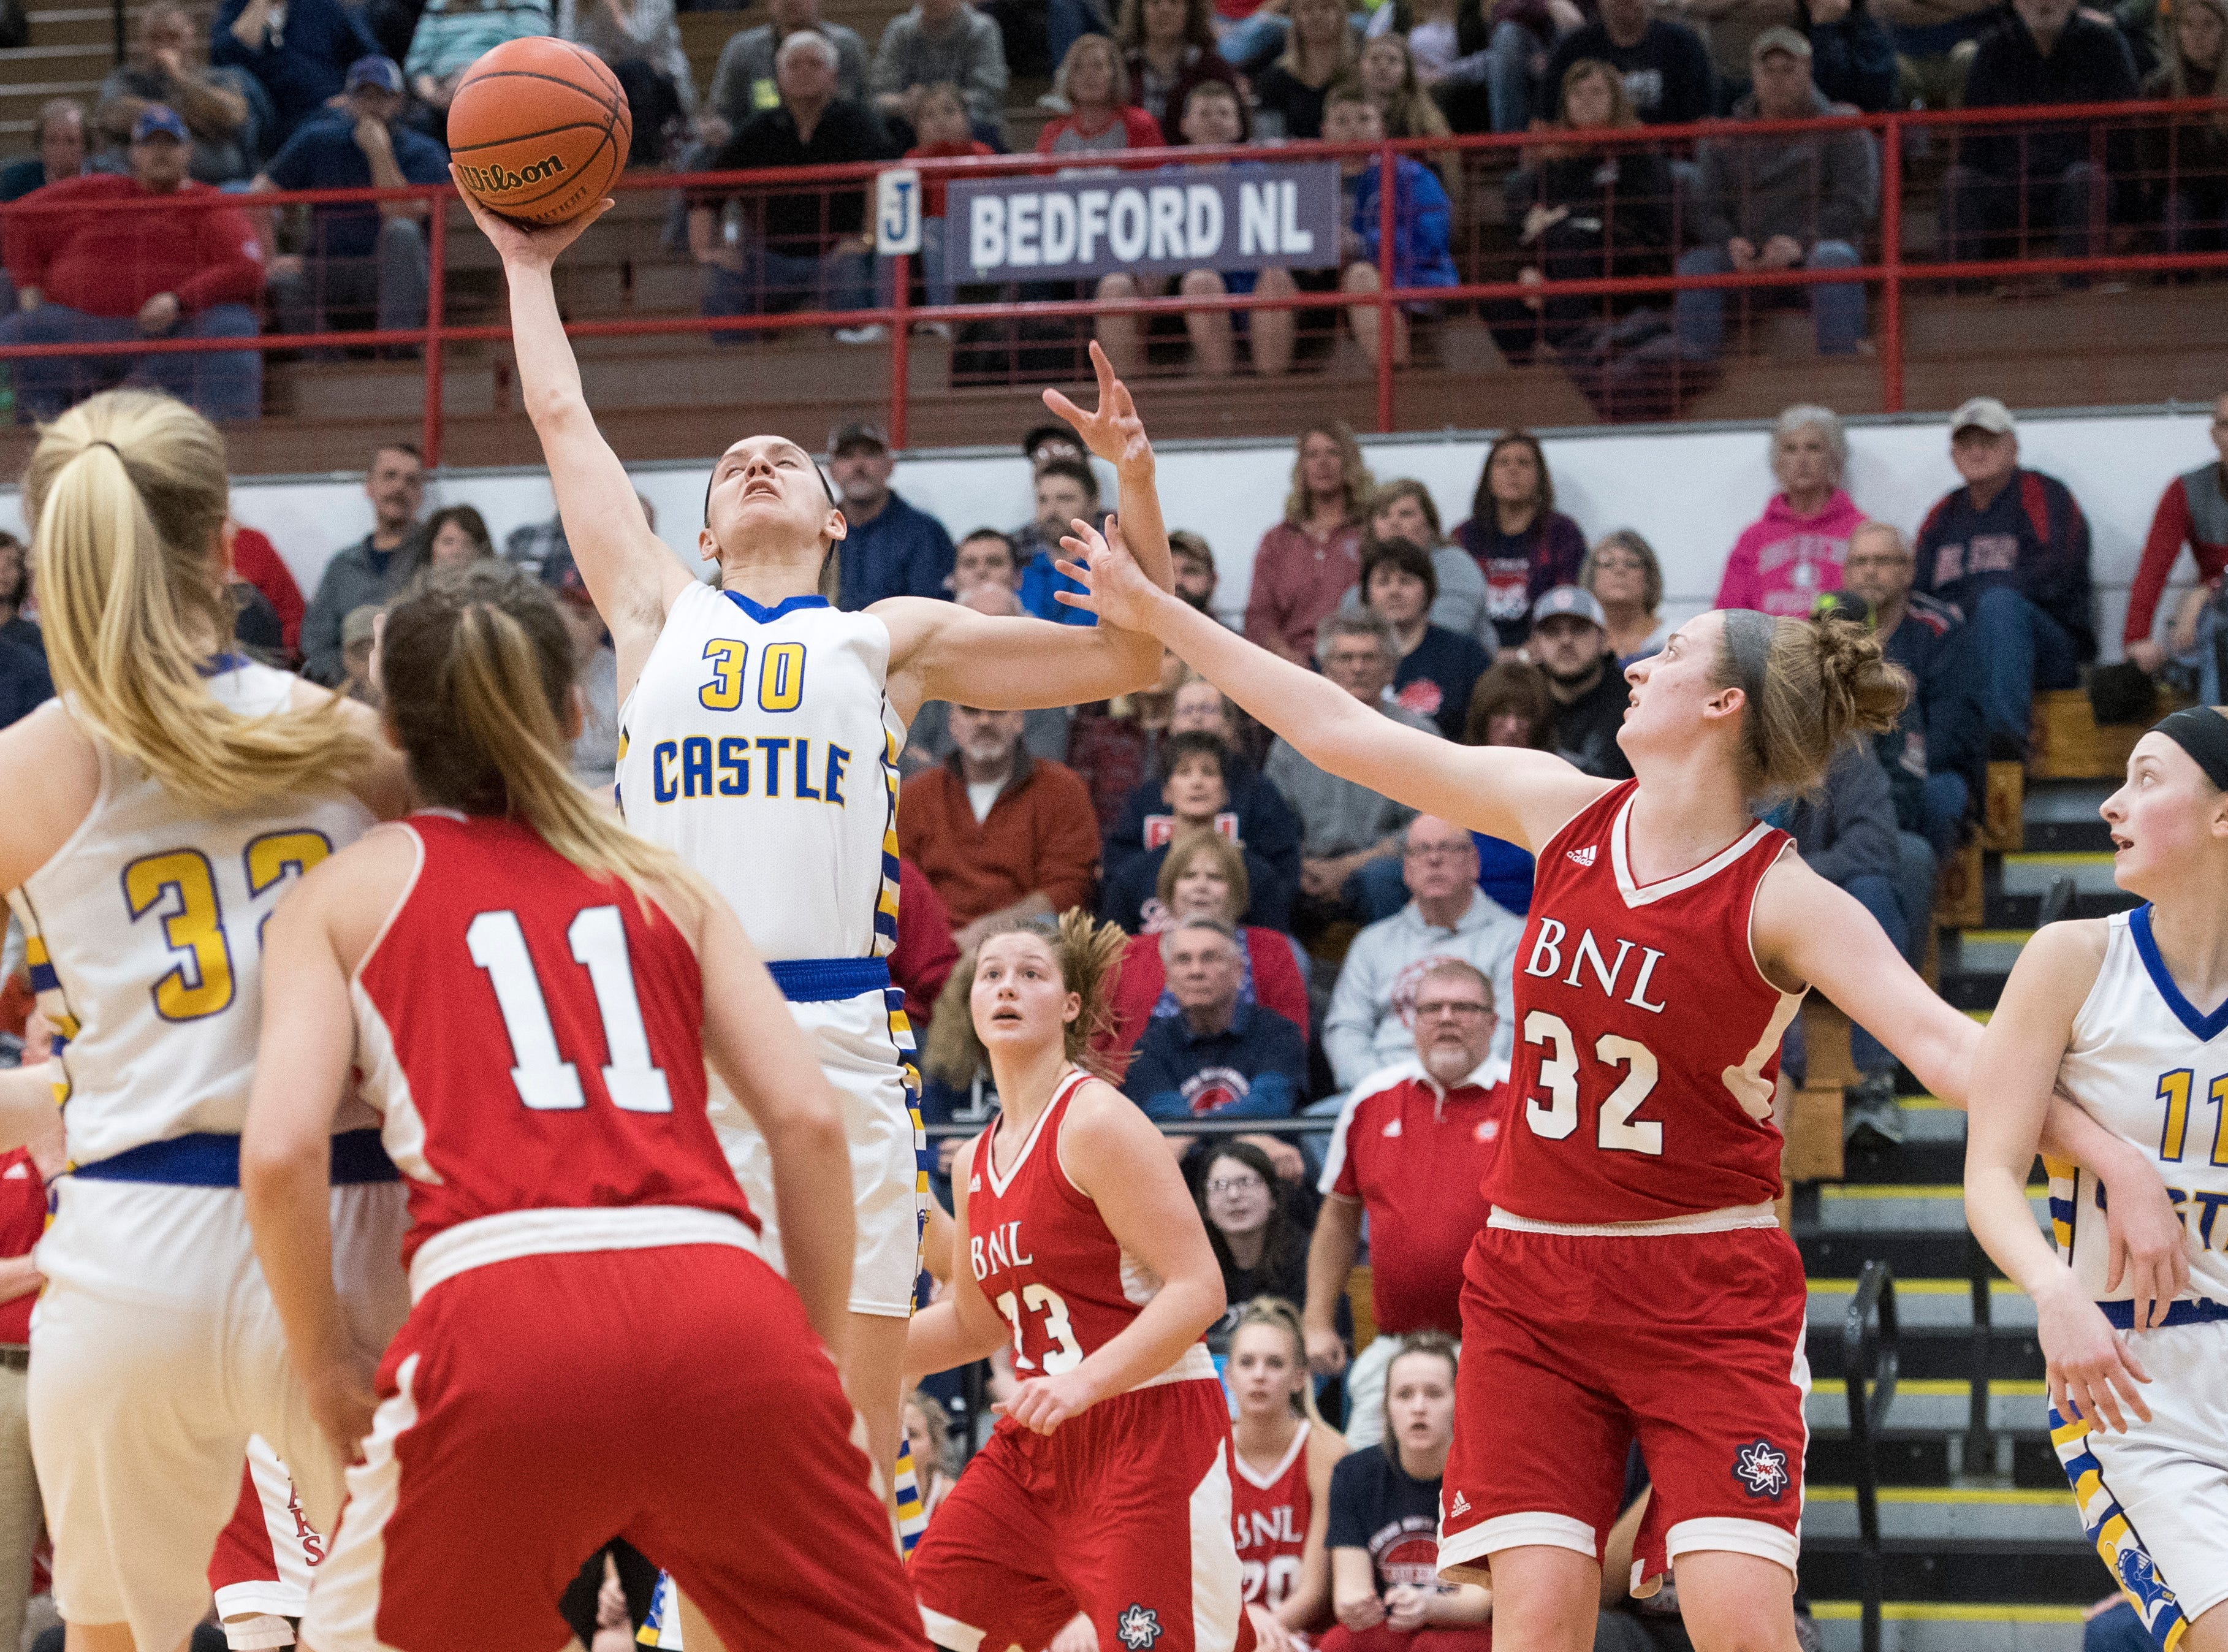 Castle's Jessica Nunge (30) reaches for a rebound during the  IHSAA Girls Basketball Class 4A Regional Championship game against the Bedford North Lawrence Lady Stars at the Stars Field House in Bedford, Ind. Saturday, Feb. 9, 2019.